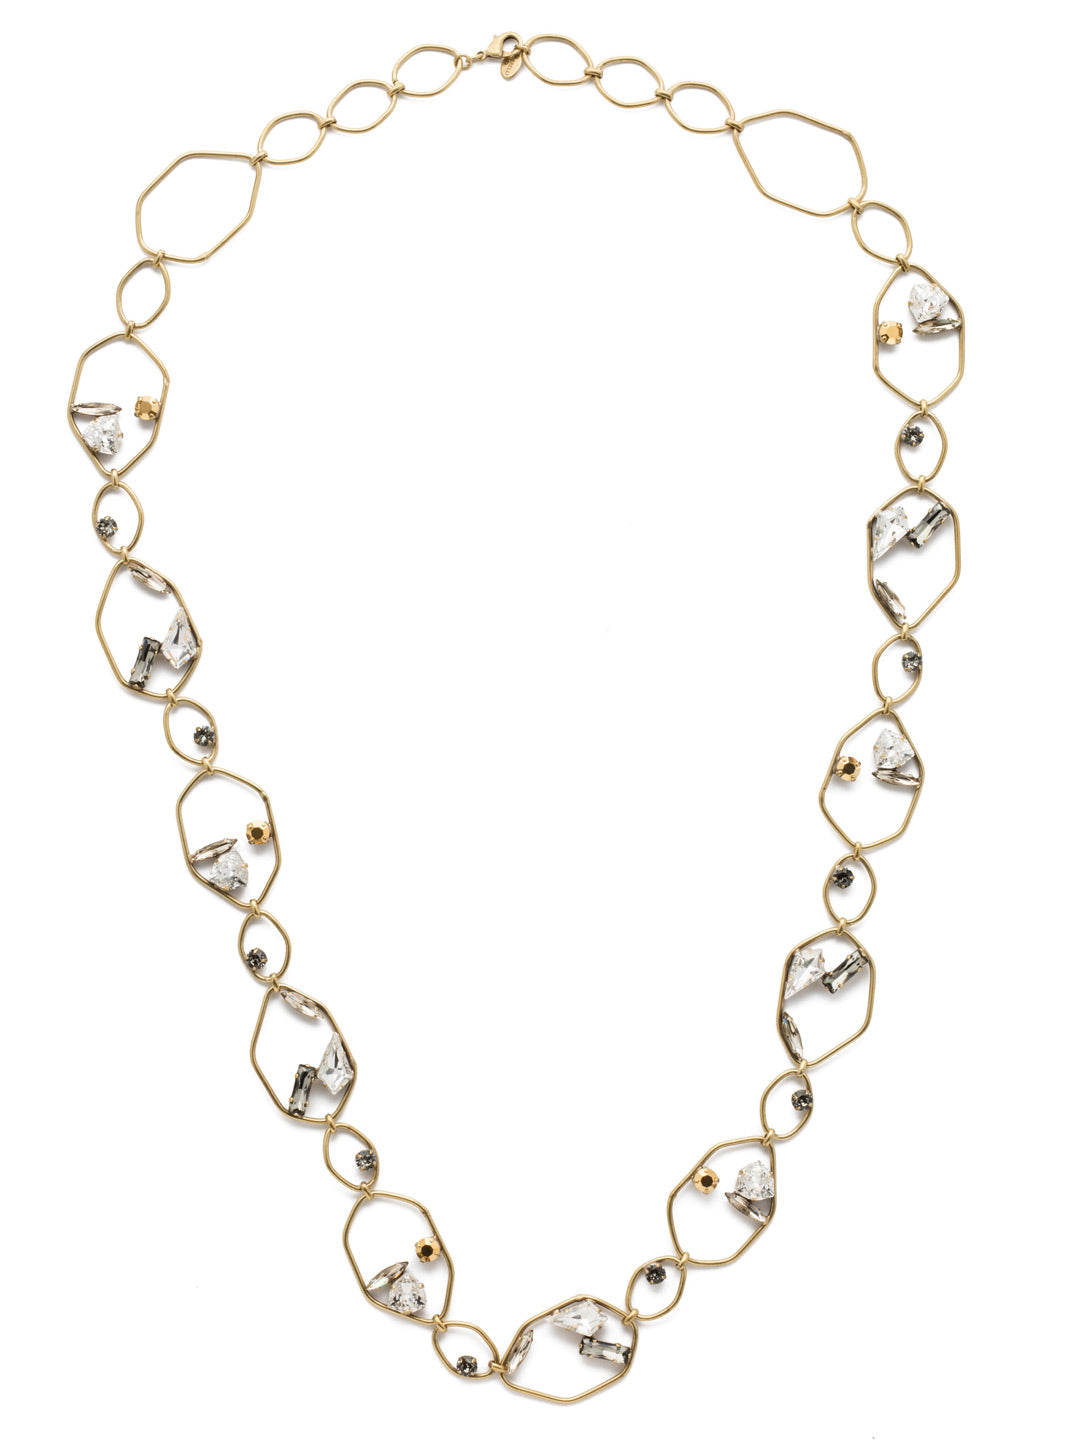 Presley Exaggerated Long Strand Necklace - NEB12AGCRY